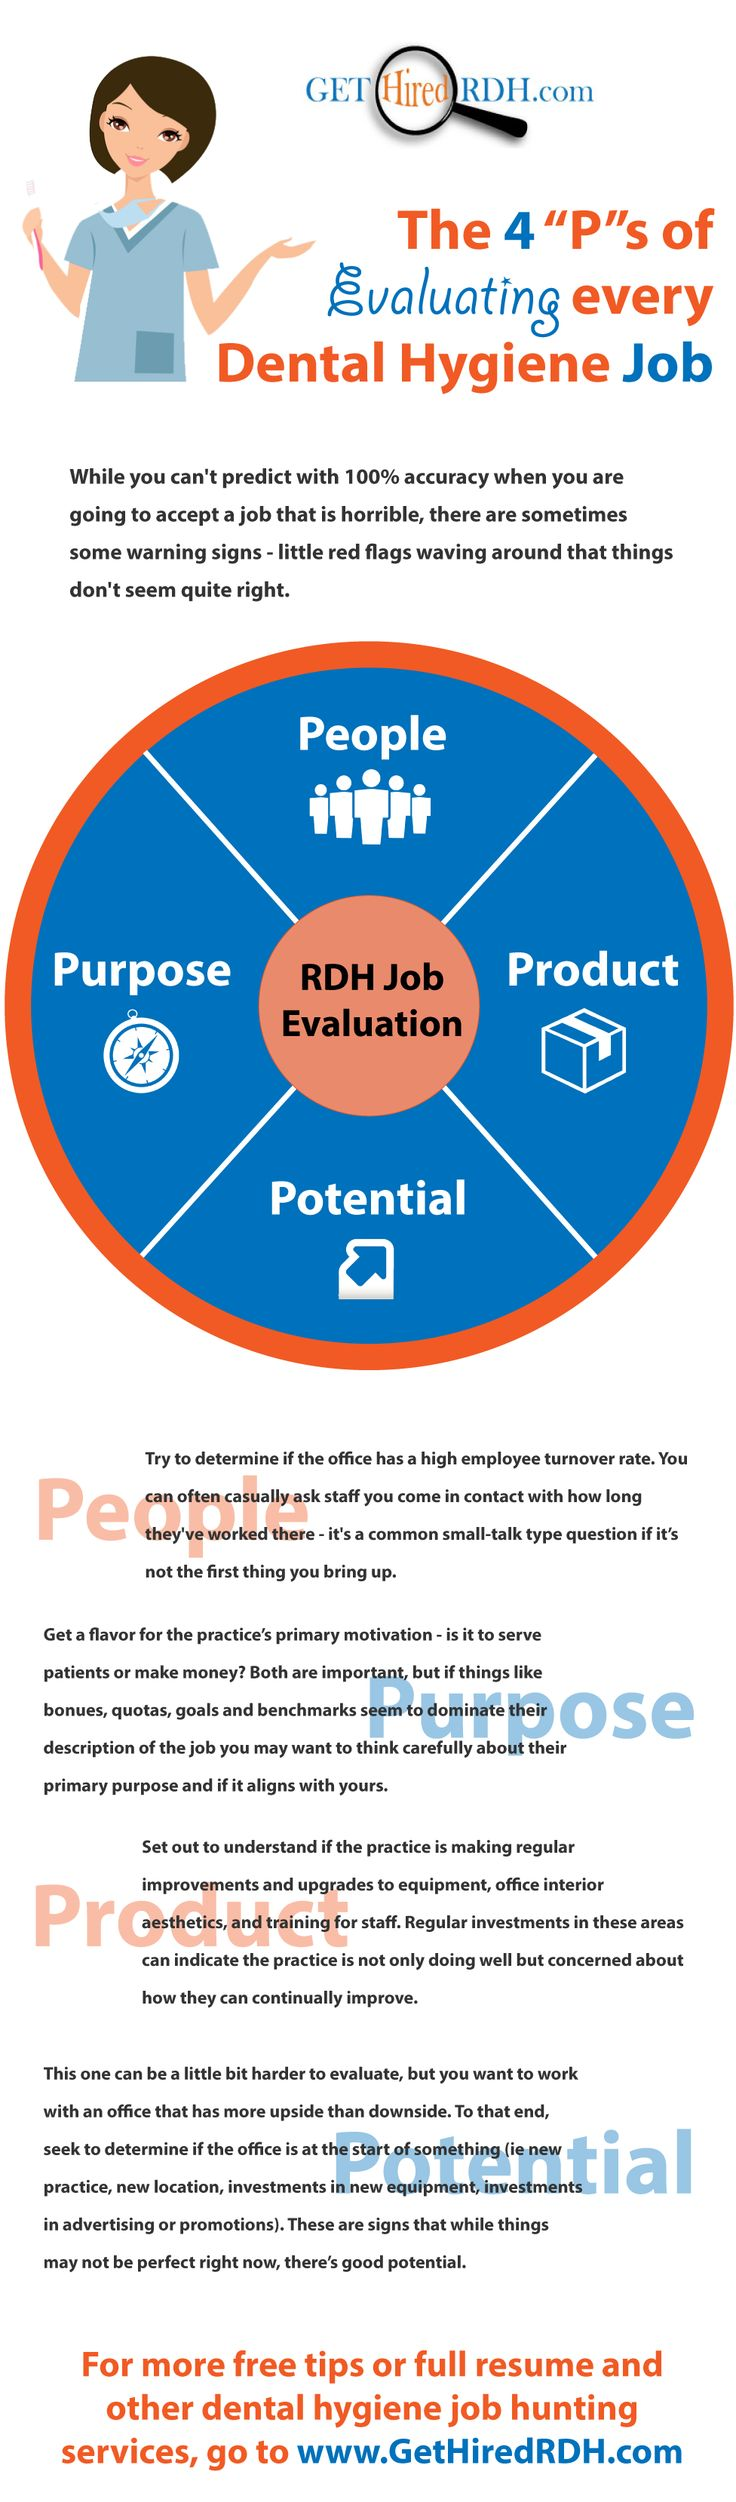 best images about rdh job hunting tips dental dental hygiene resumes samples tips ideas and more the place to get help your dental hygiene resume